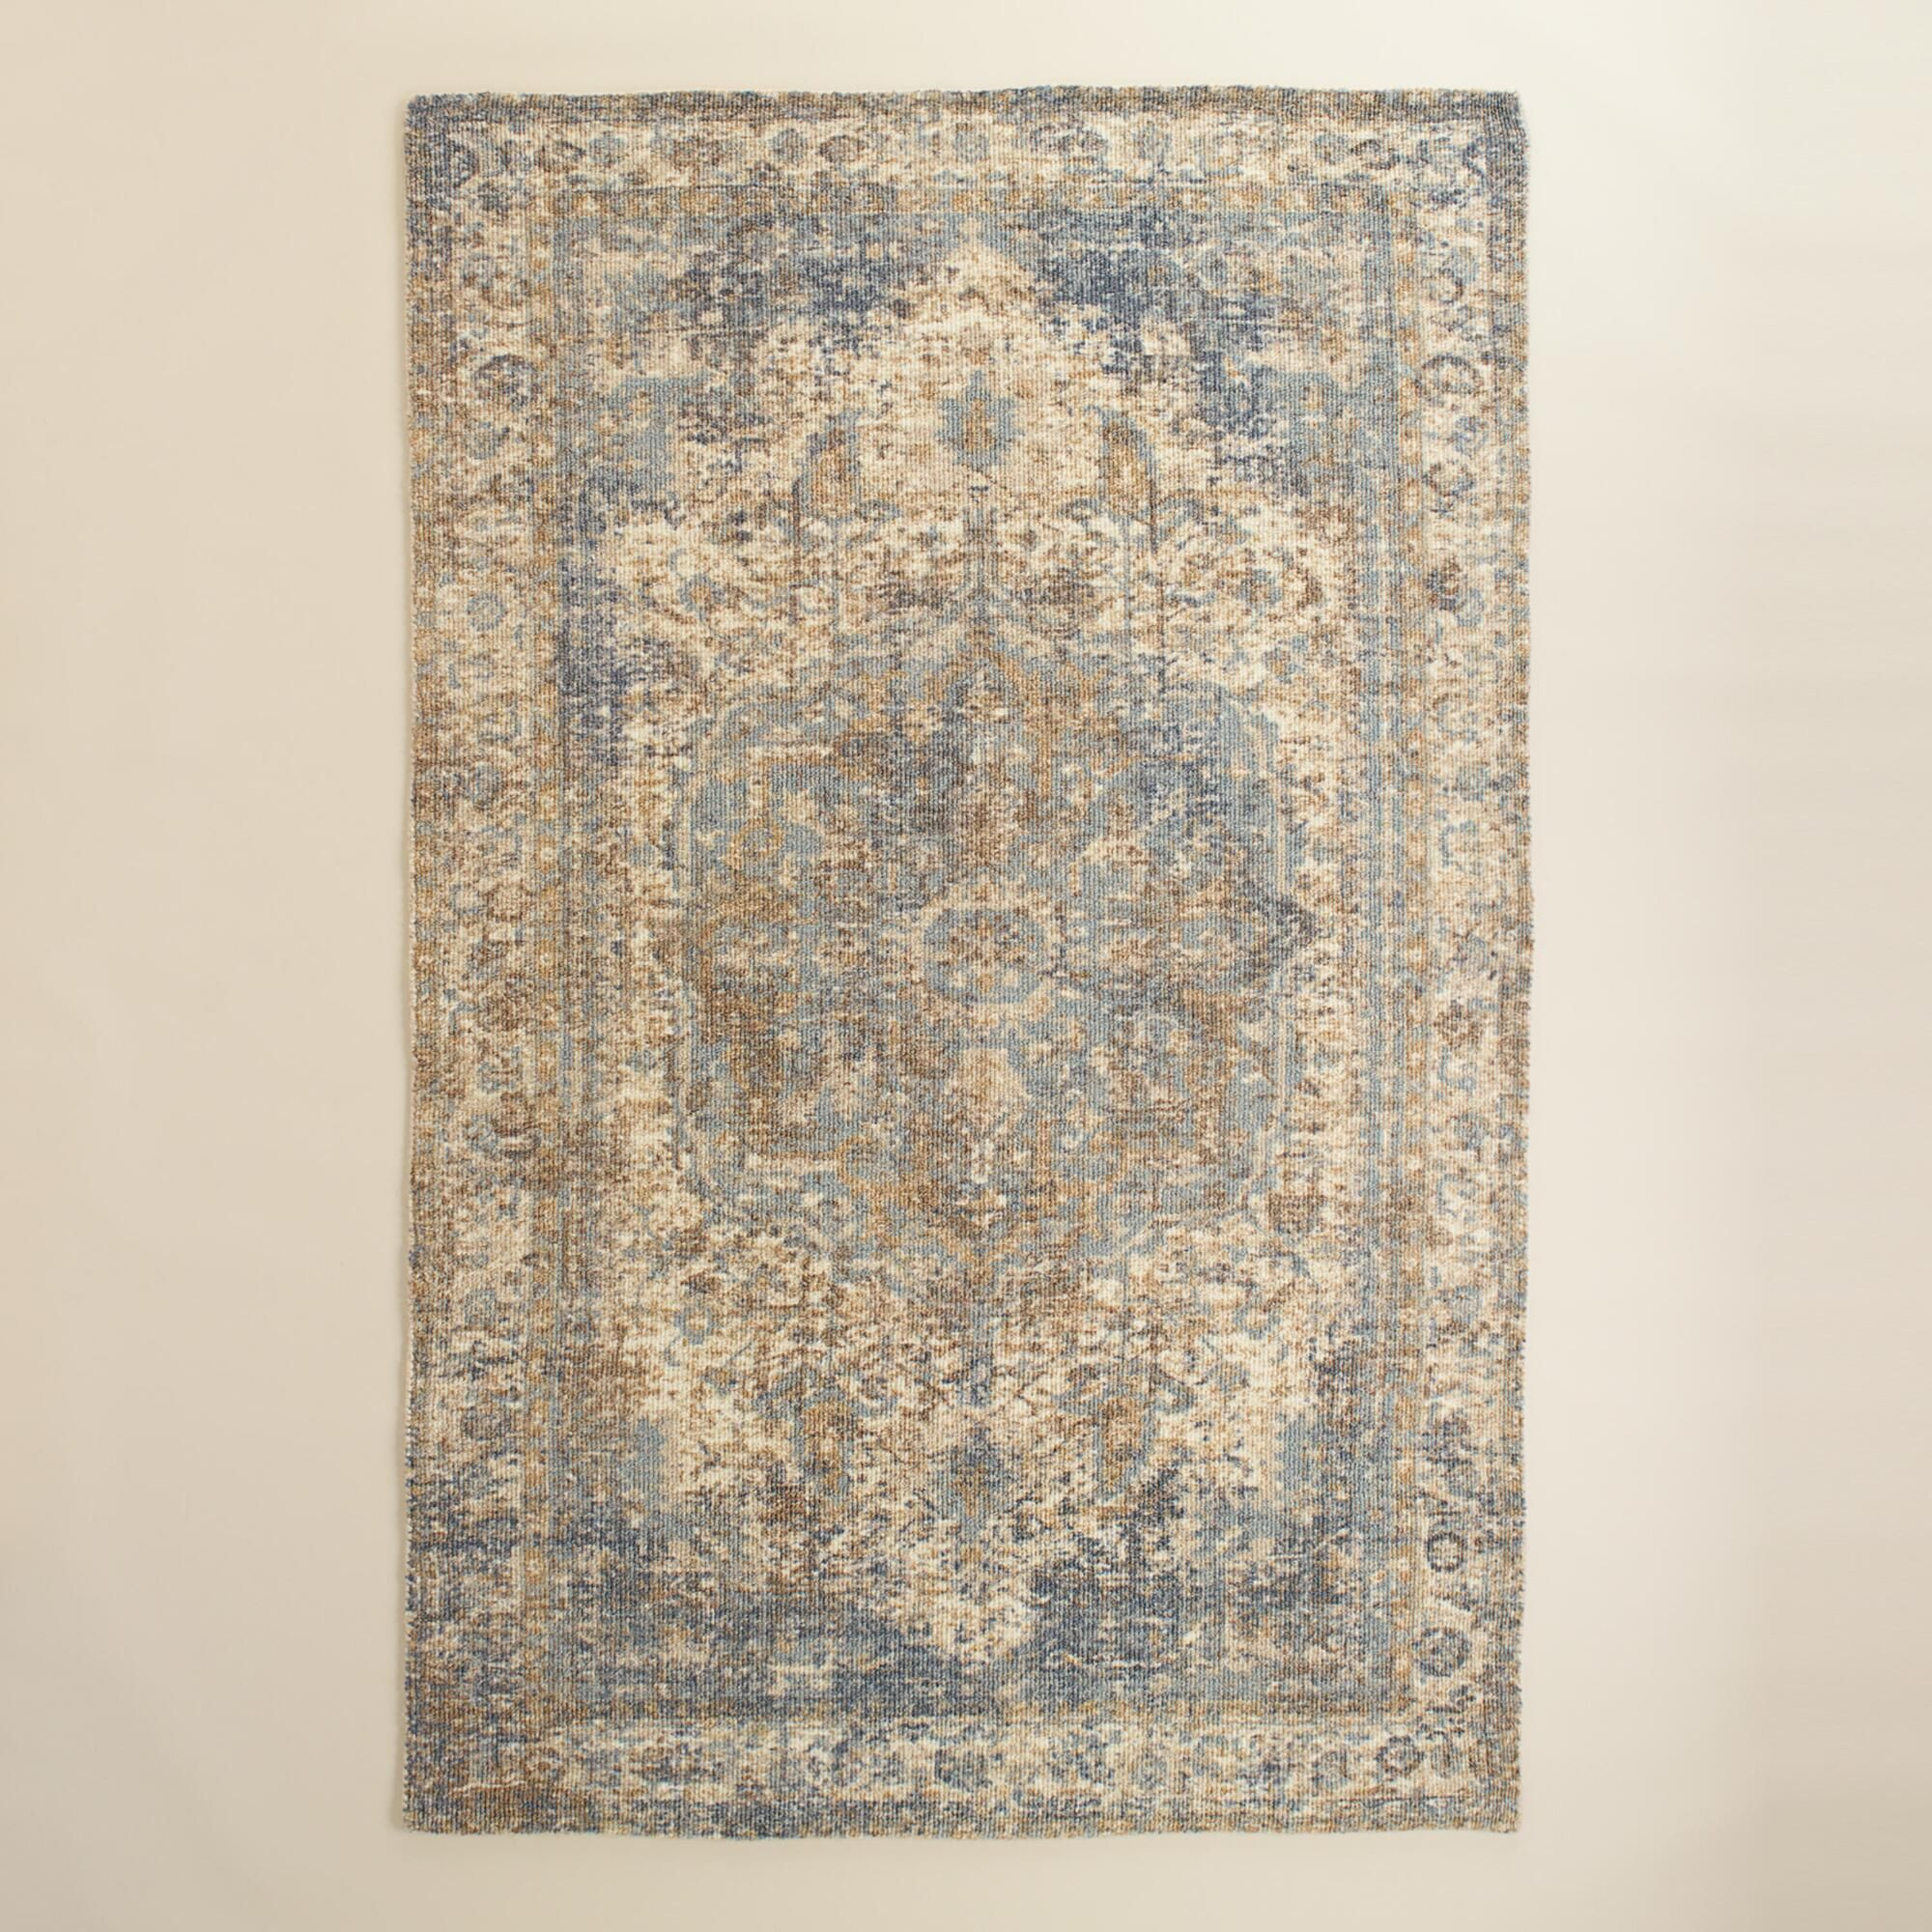 Blue Gray Print Tufted Nylon Veronica Area Rug This Effortlessly Combines Antique Chic And High Performance Durability From